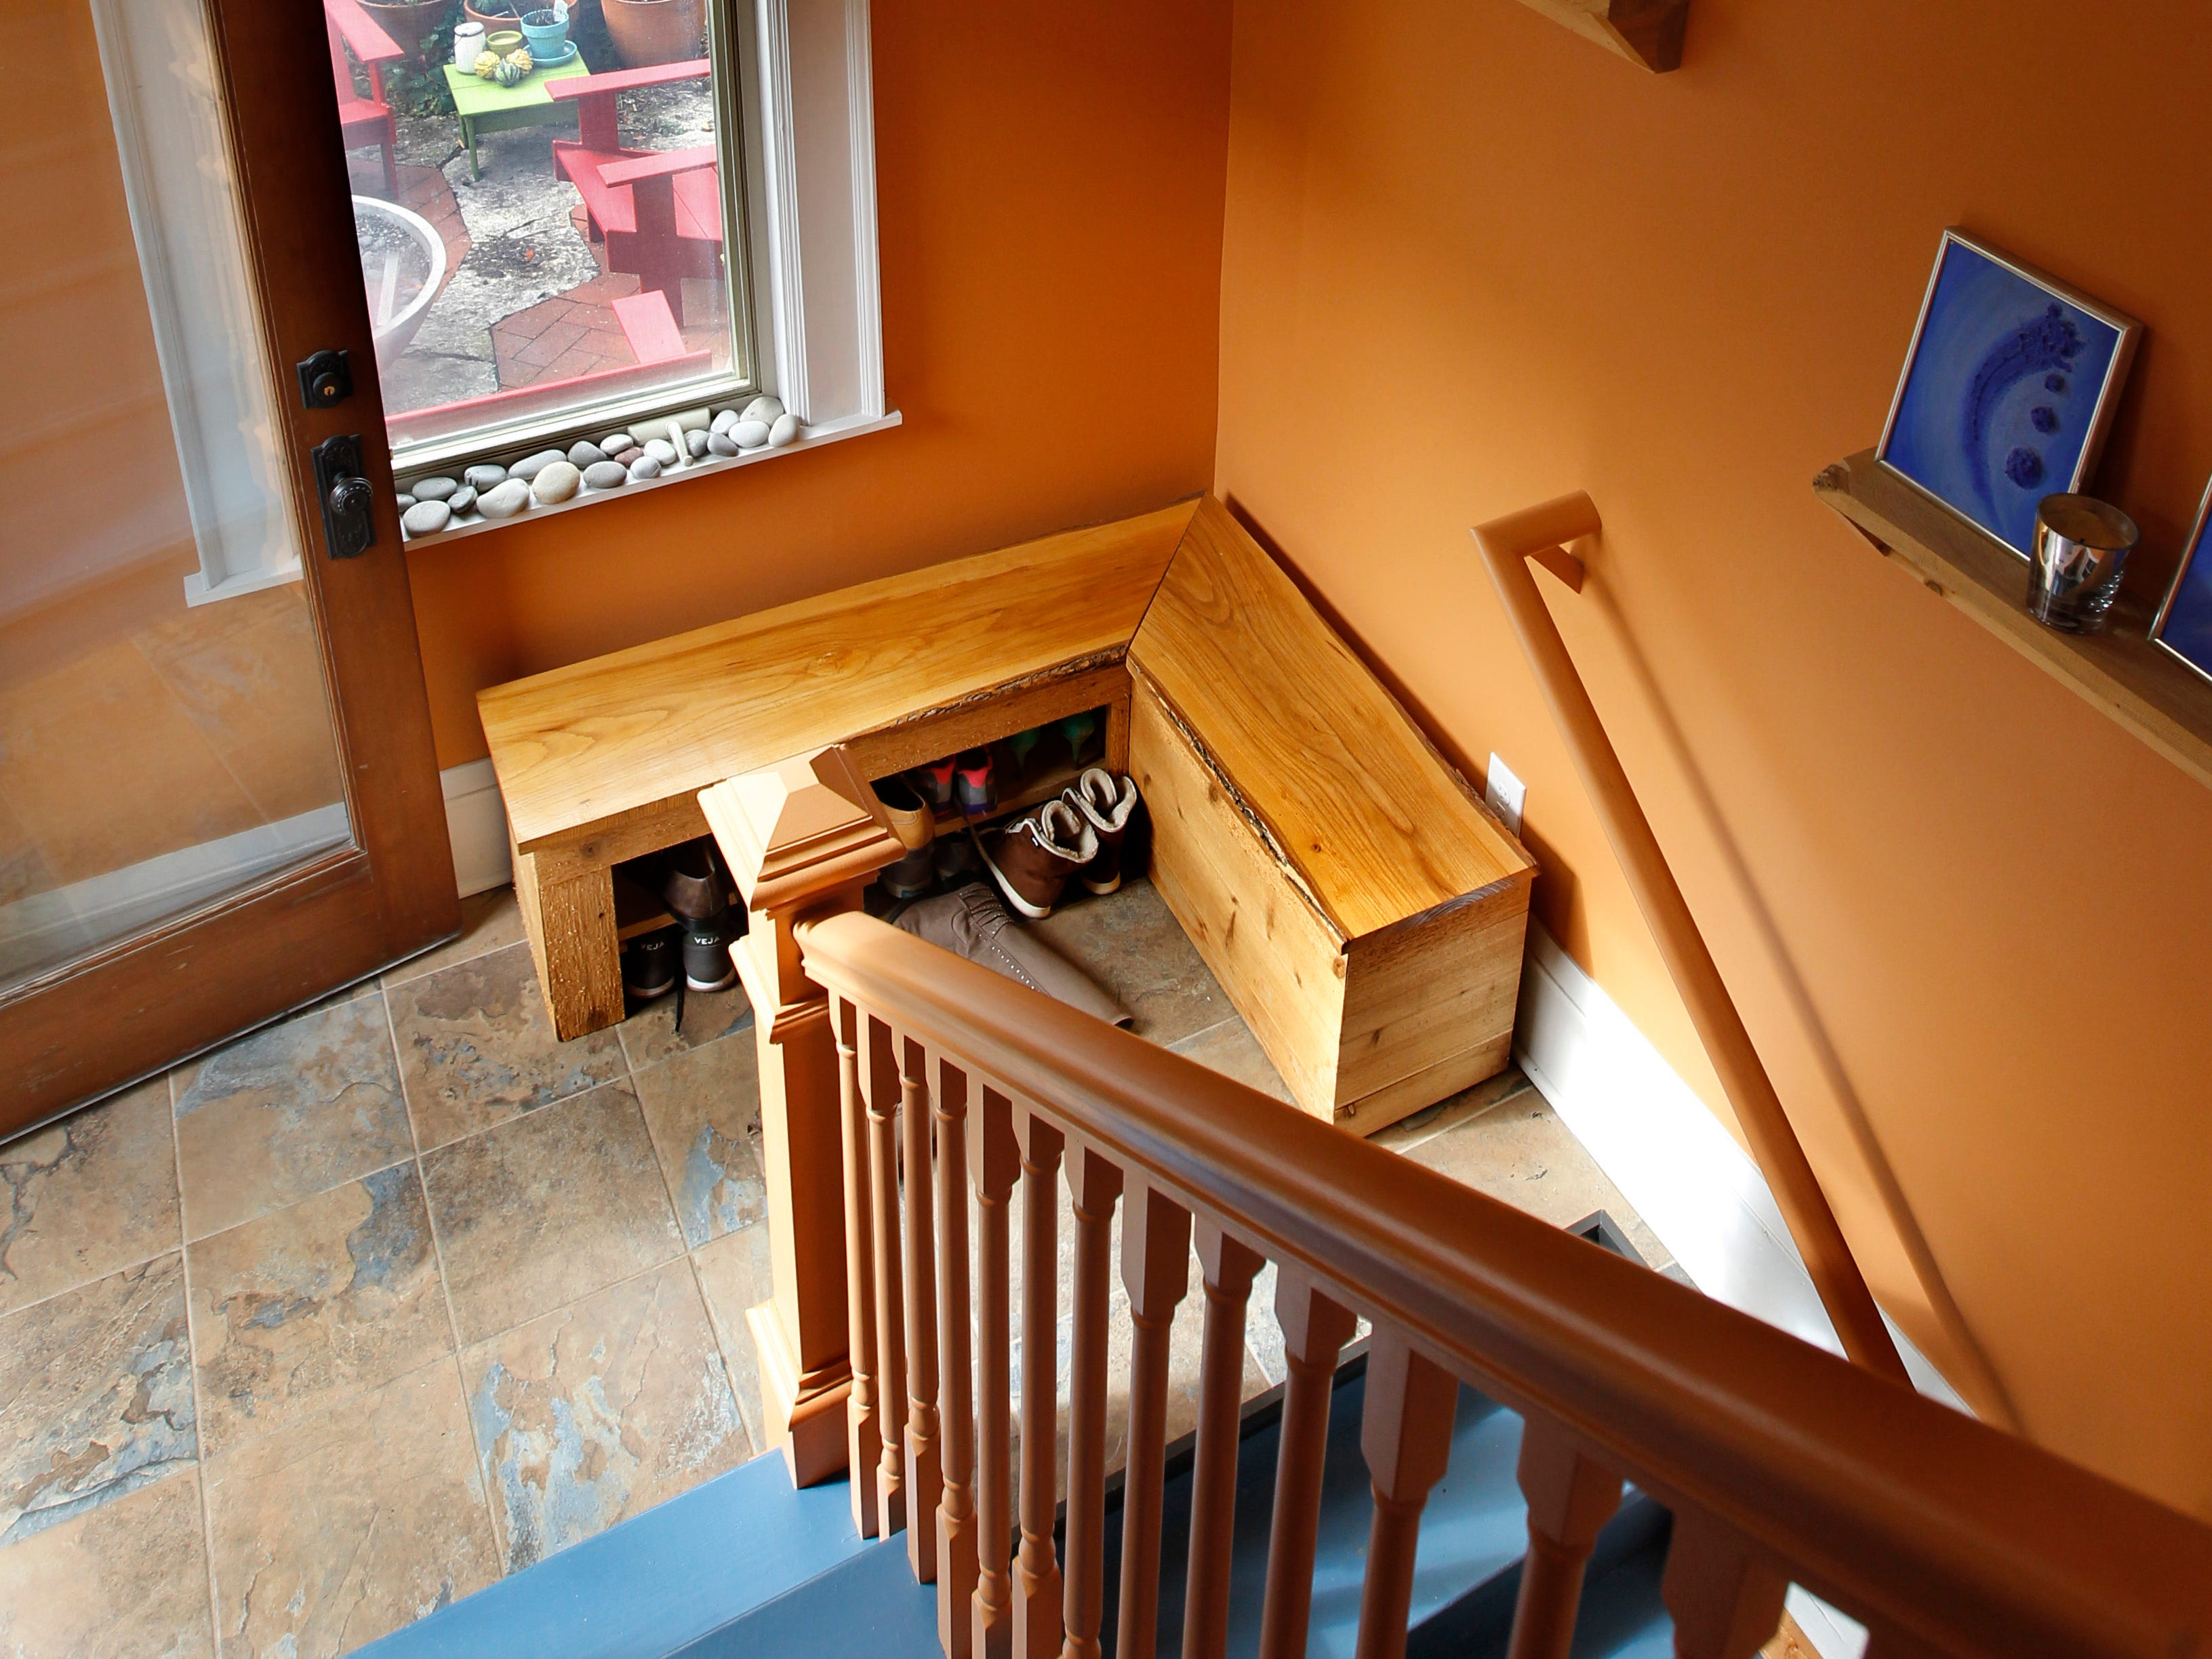 A colorful mud room sits at the bottom of the back stairway.